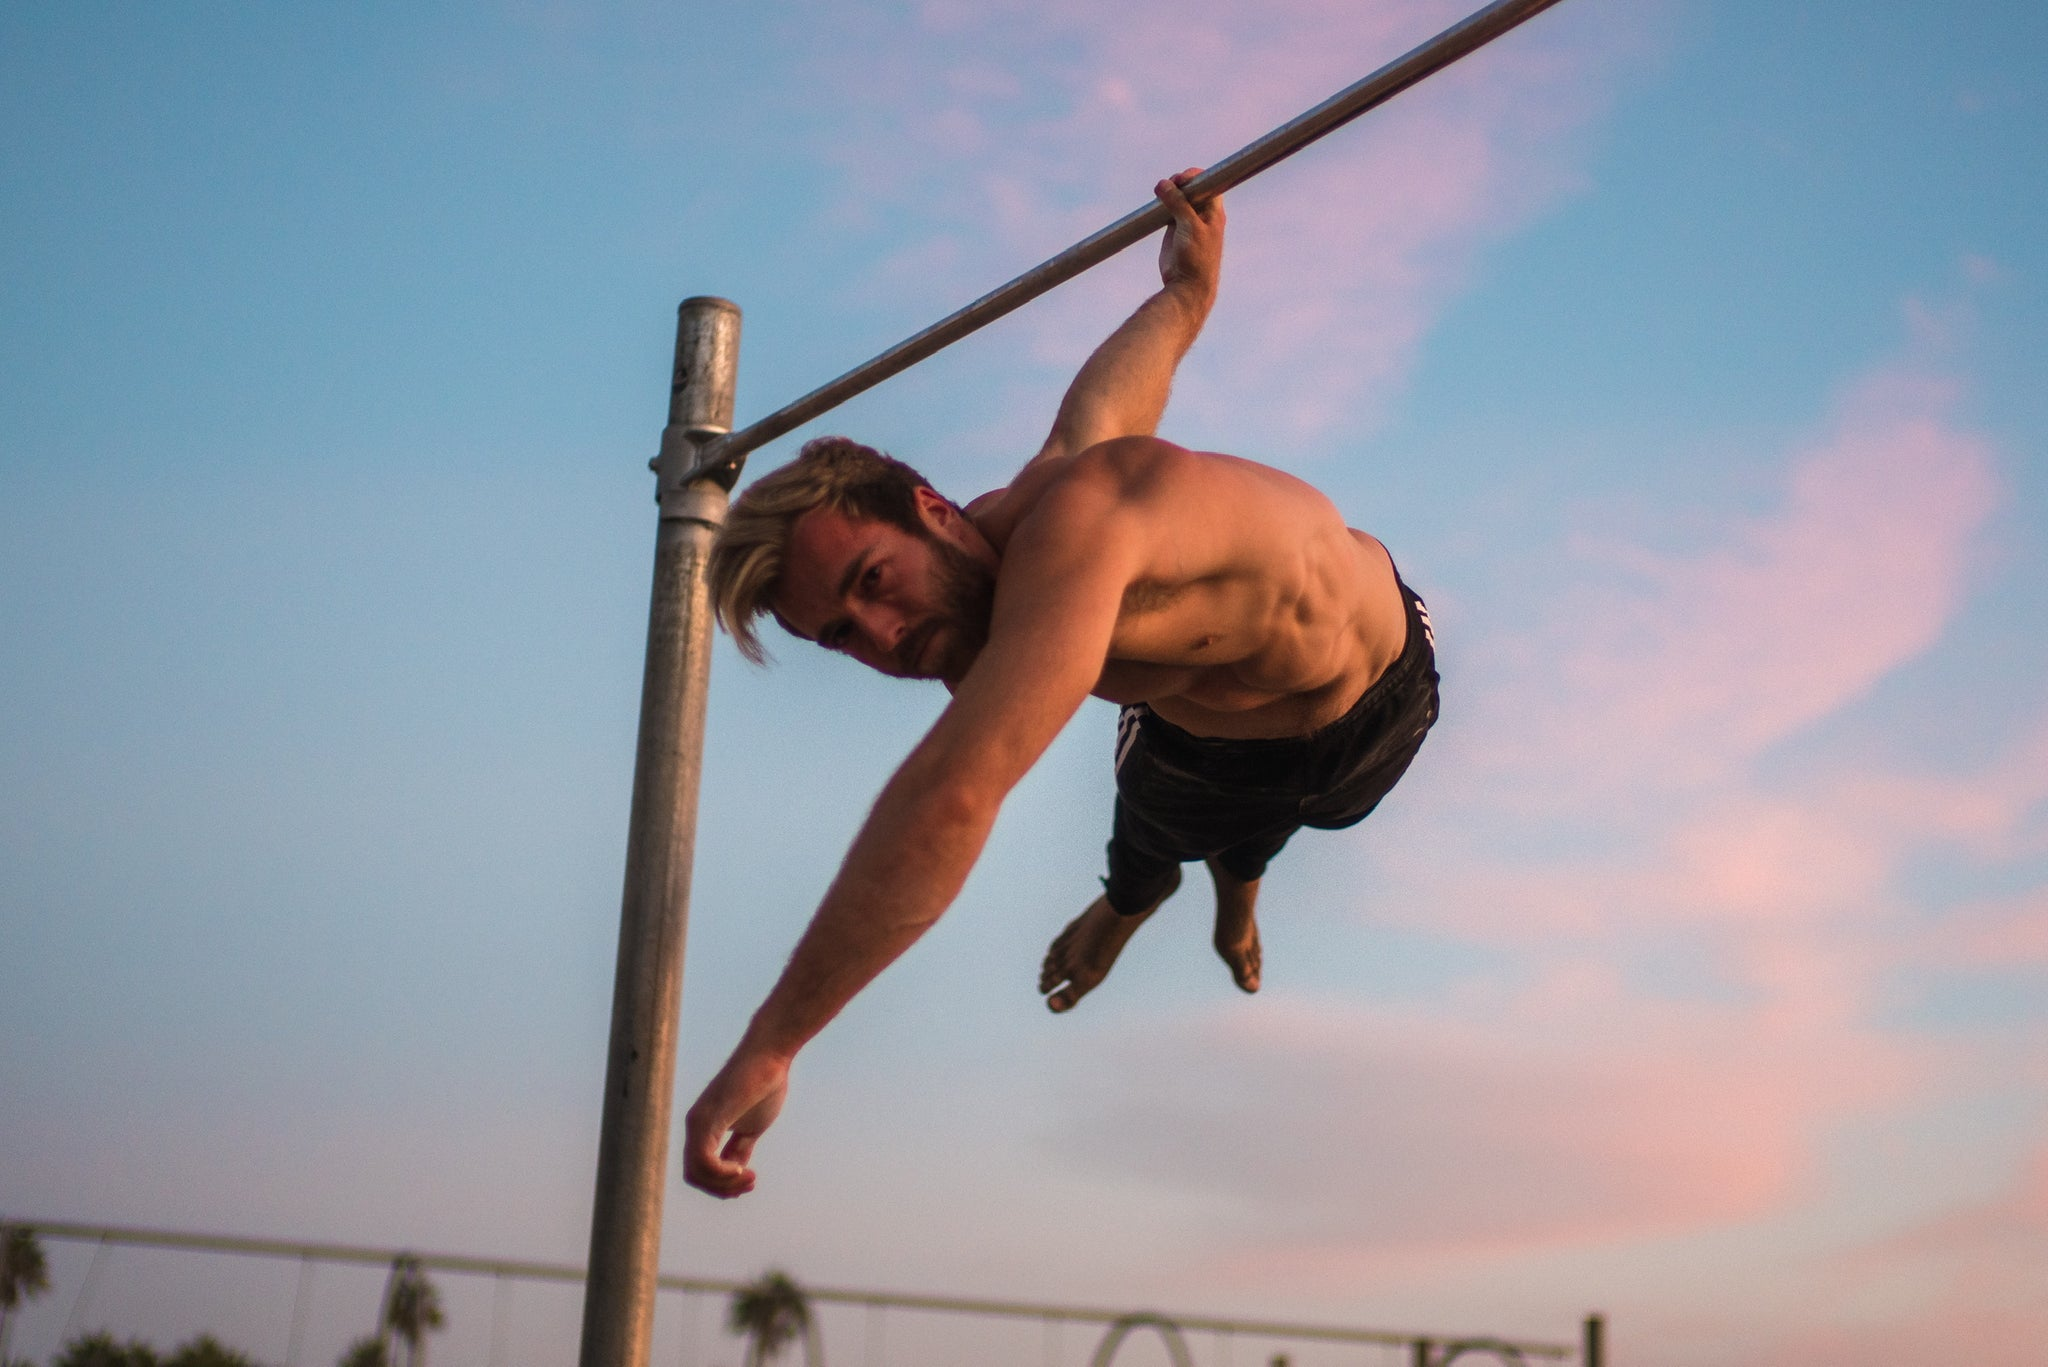 Nutrition for Calisthenics Athletes